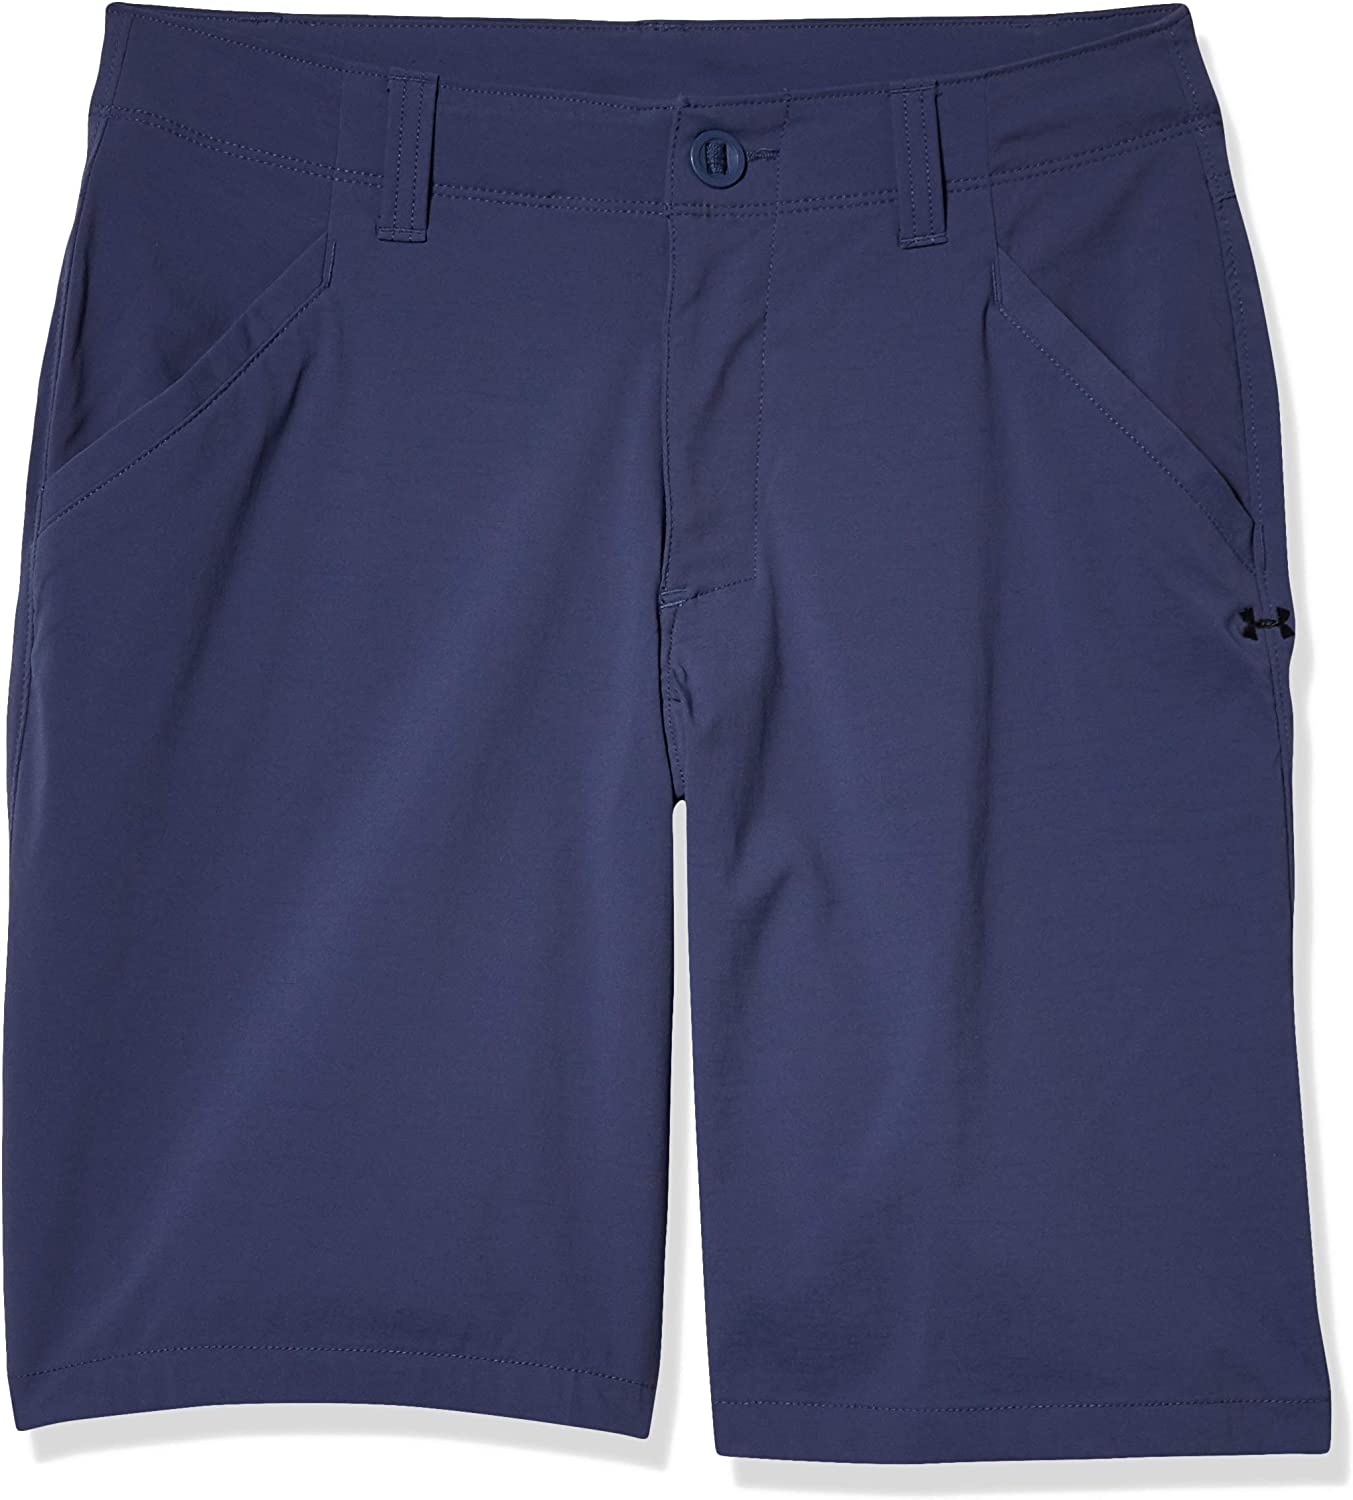 Under Armour Men's Fish Hunter Short 2.0